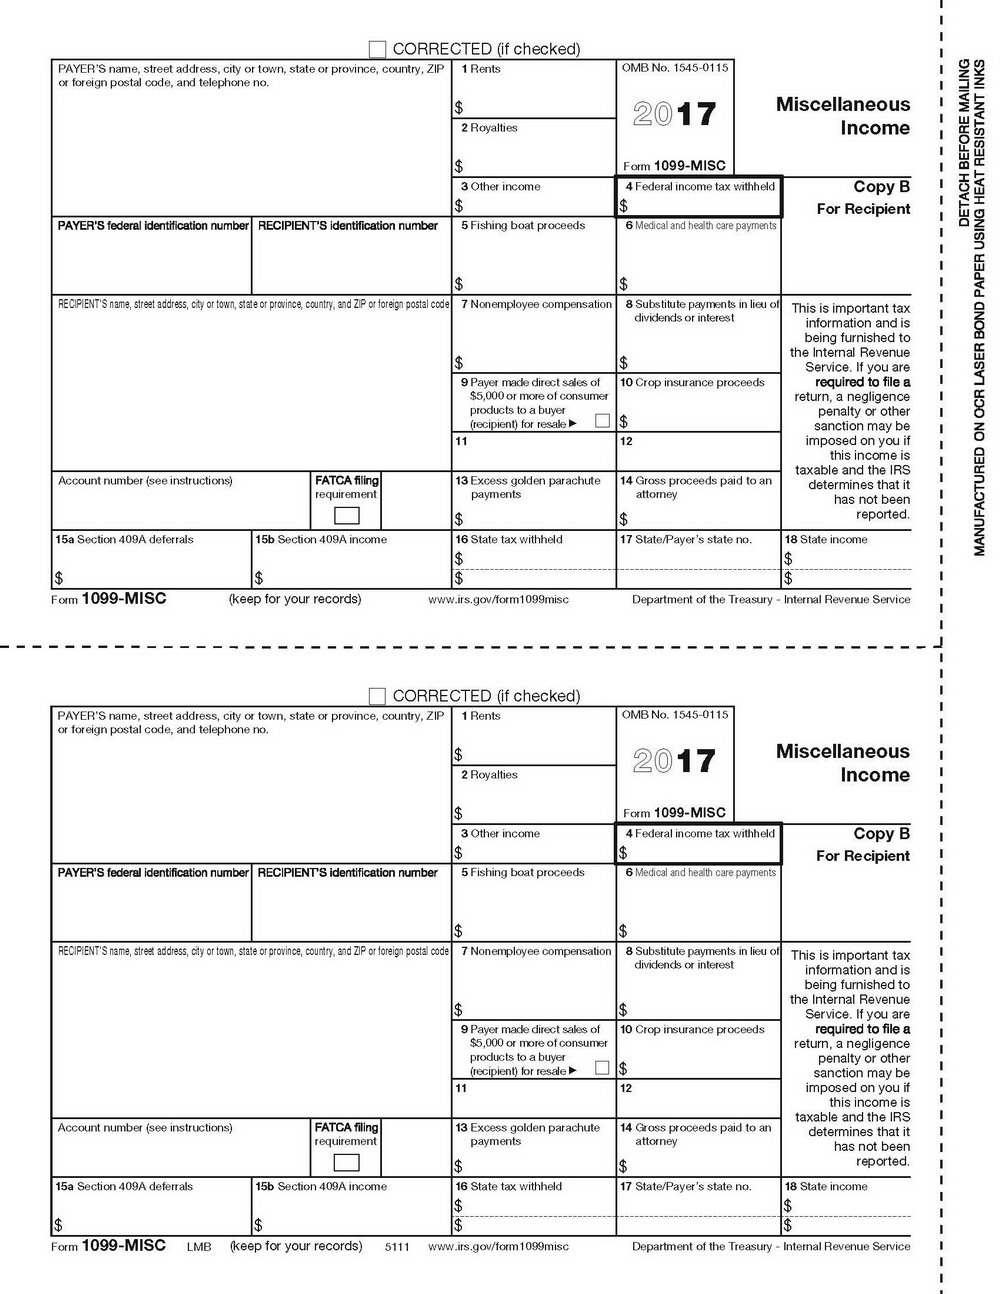 Printable 1099 Form 2017 Free | Mbm Legal - Free Printable 1099 Form